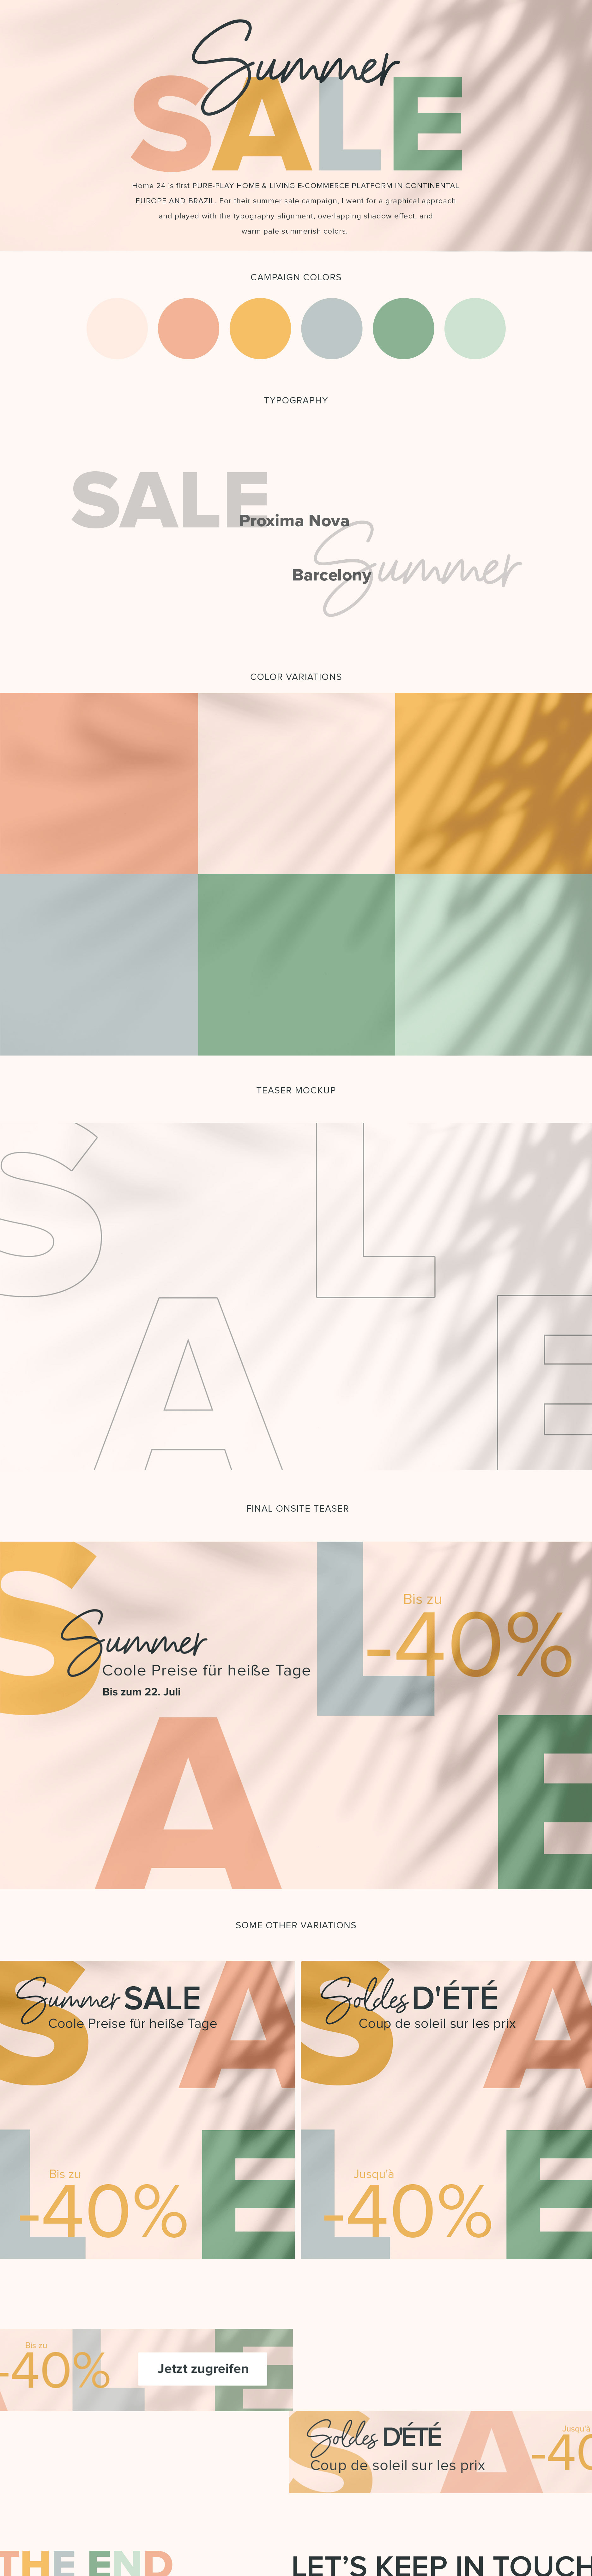 Summer Sale Campaign On Behance